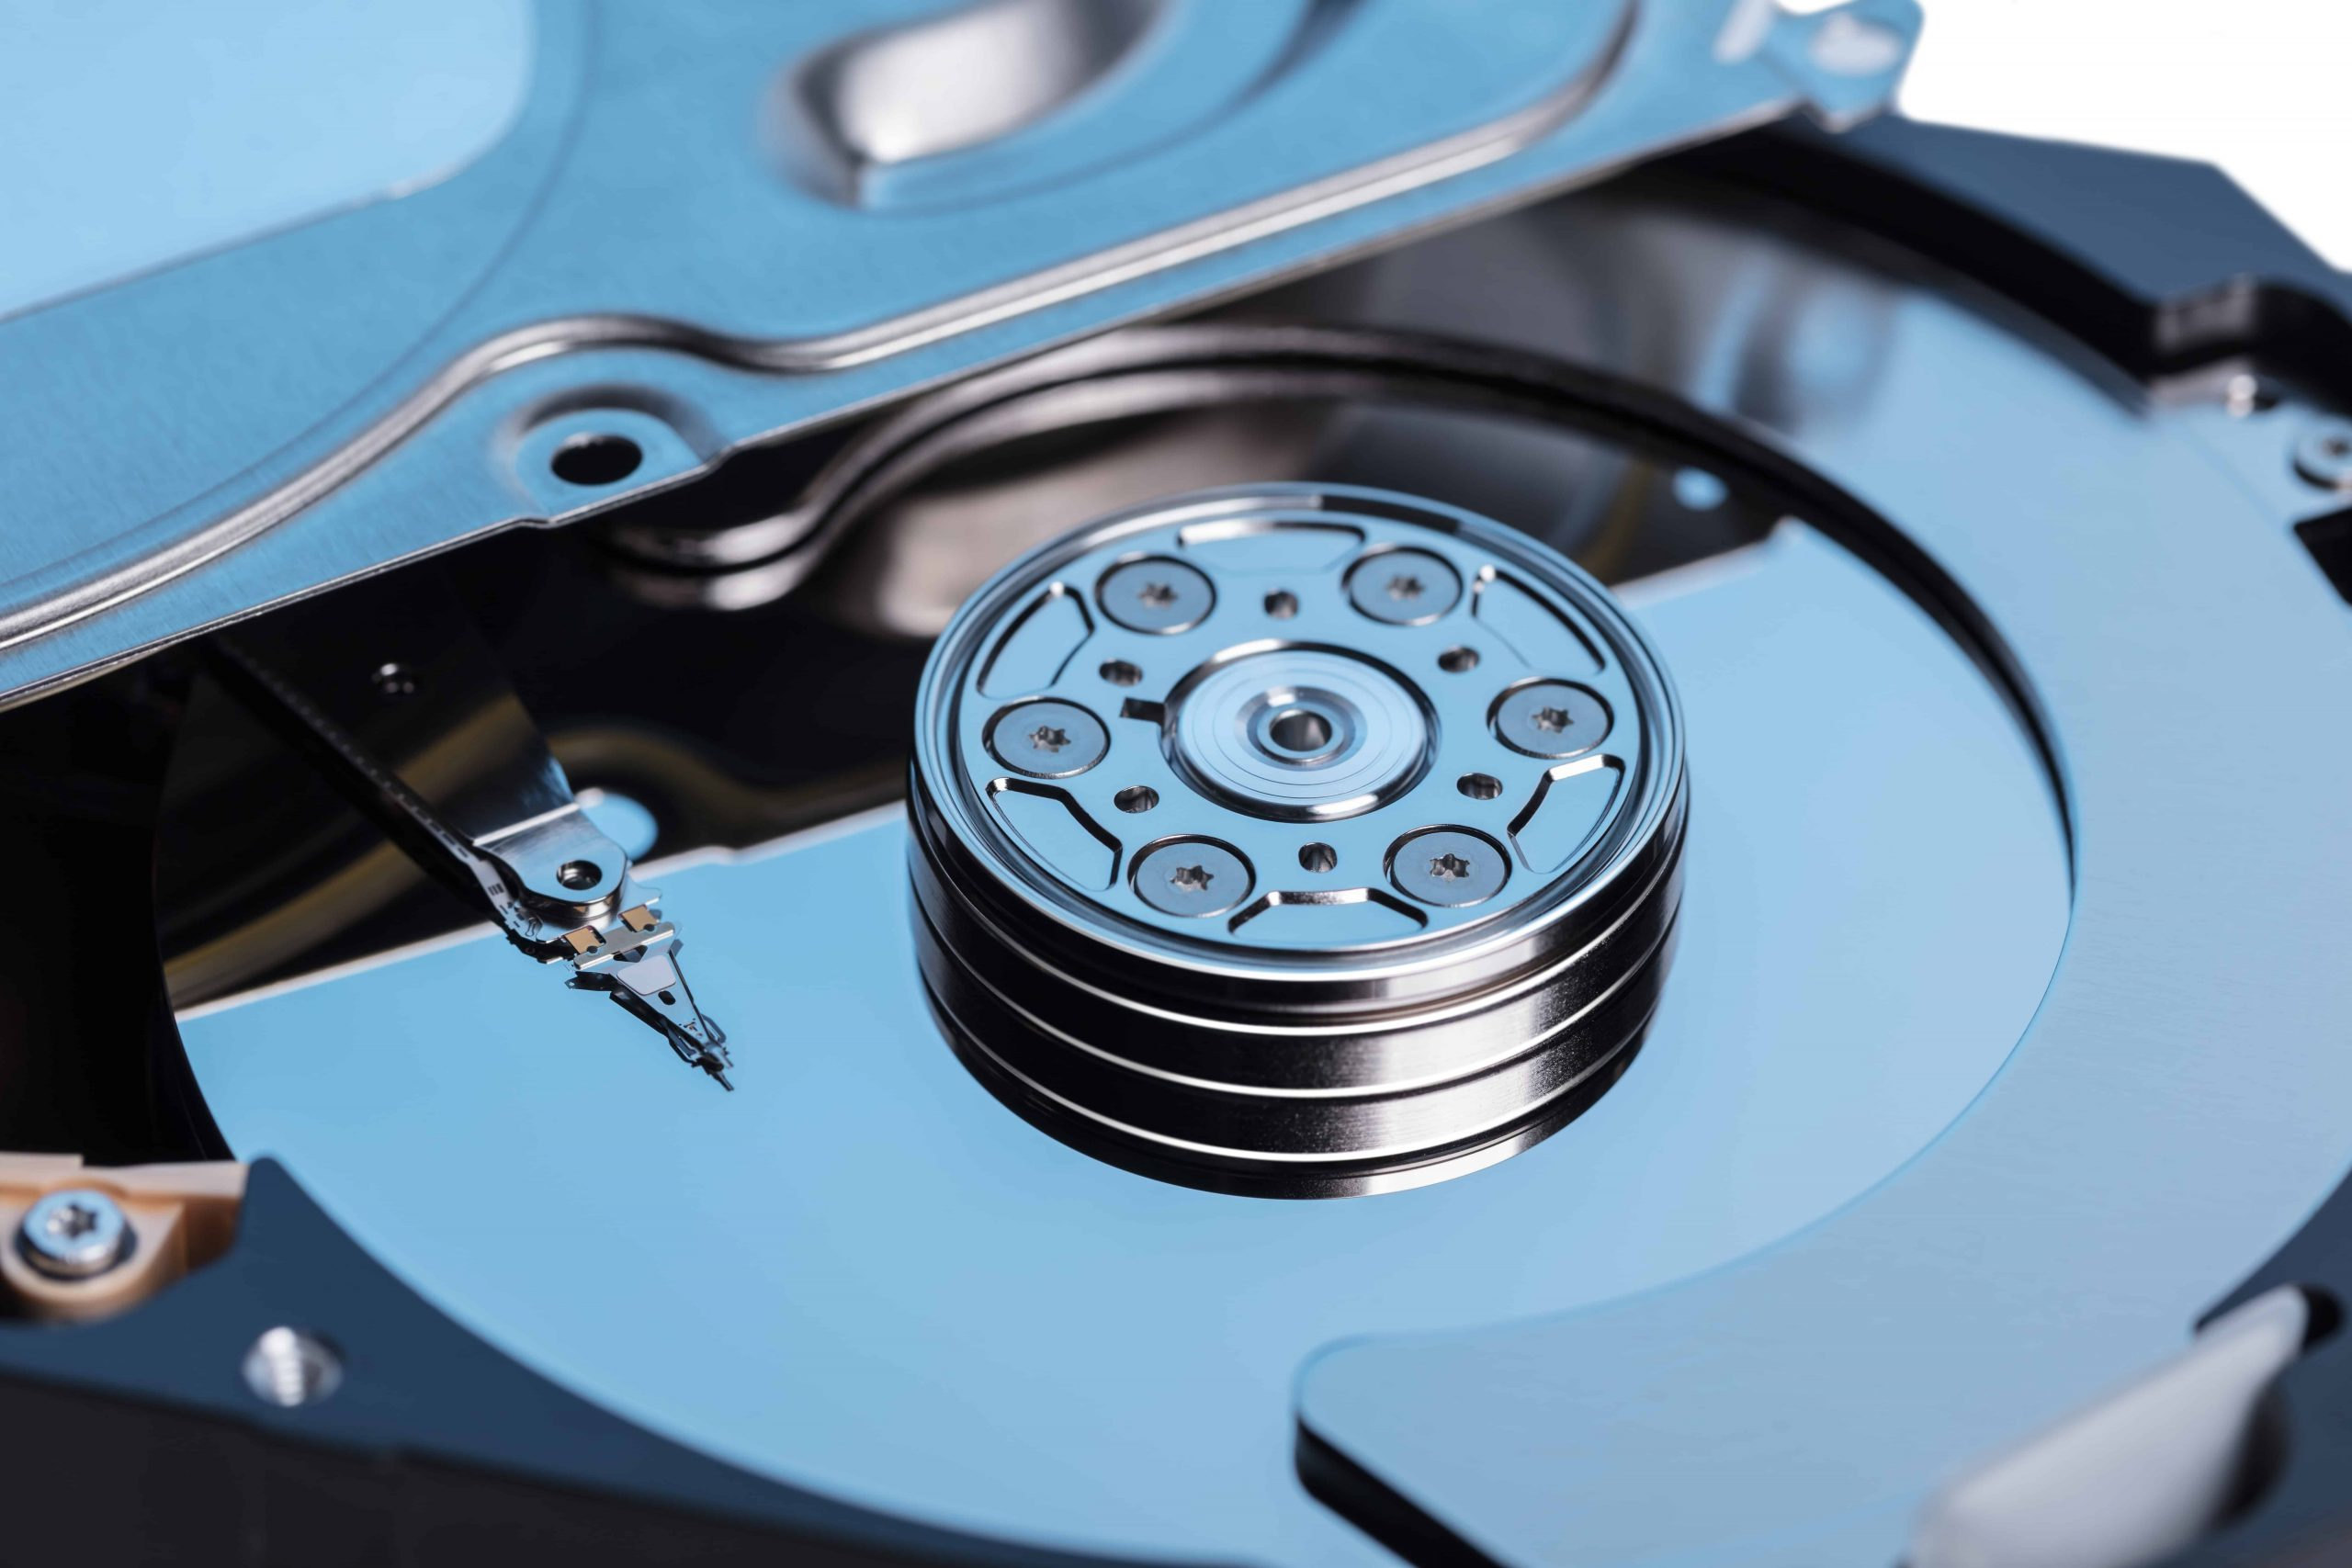 Best Internal Hard Drive 2020: Shopping Guide & Review